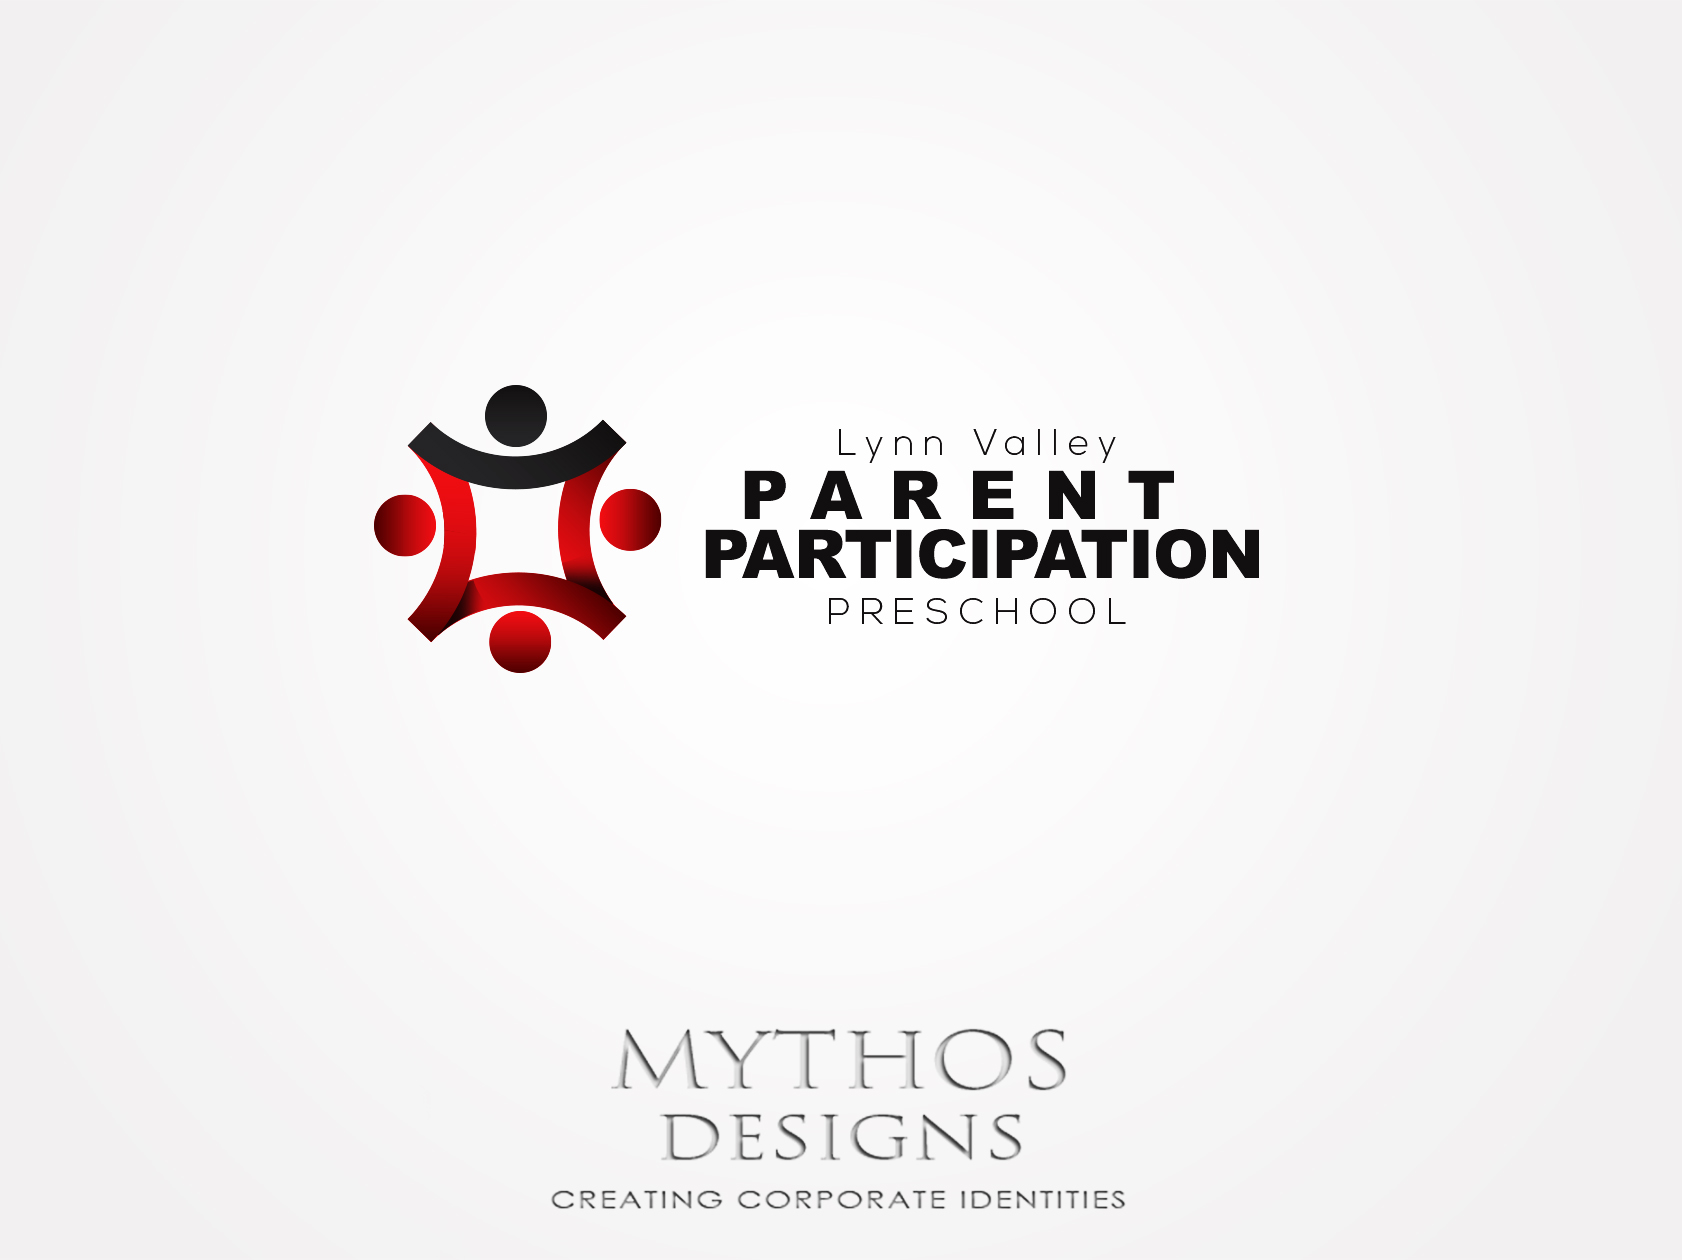 Logo Design by Mythos Designs - Entry No. 10 in the Logo Design Contest New Logo Design for Lynn Valley Parent Participation Preschool.